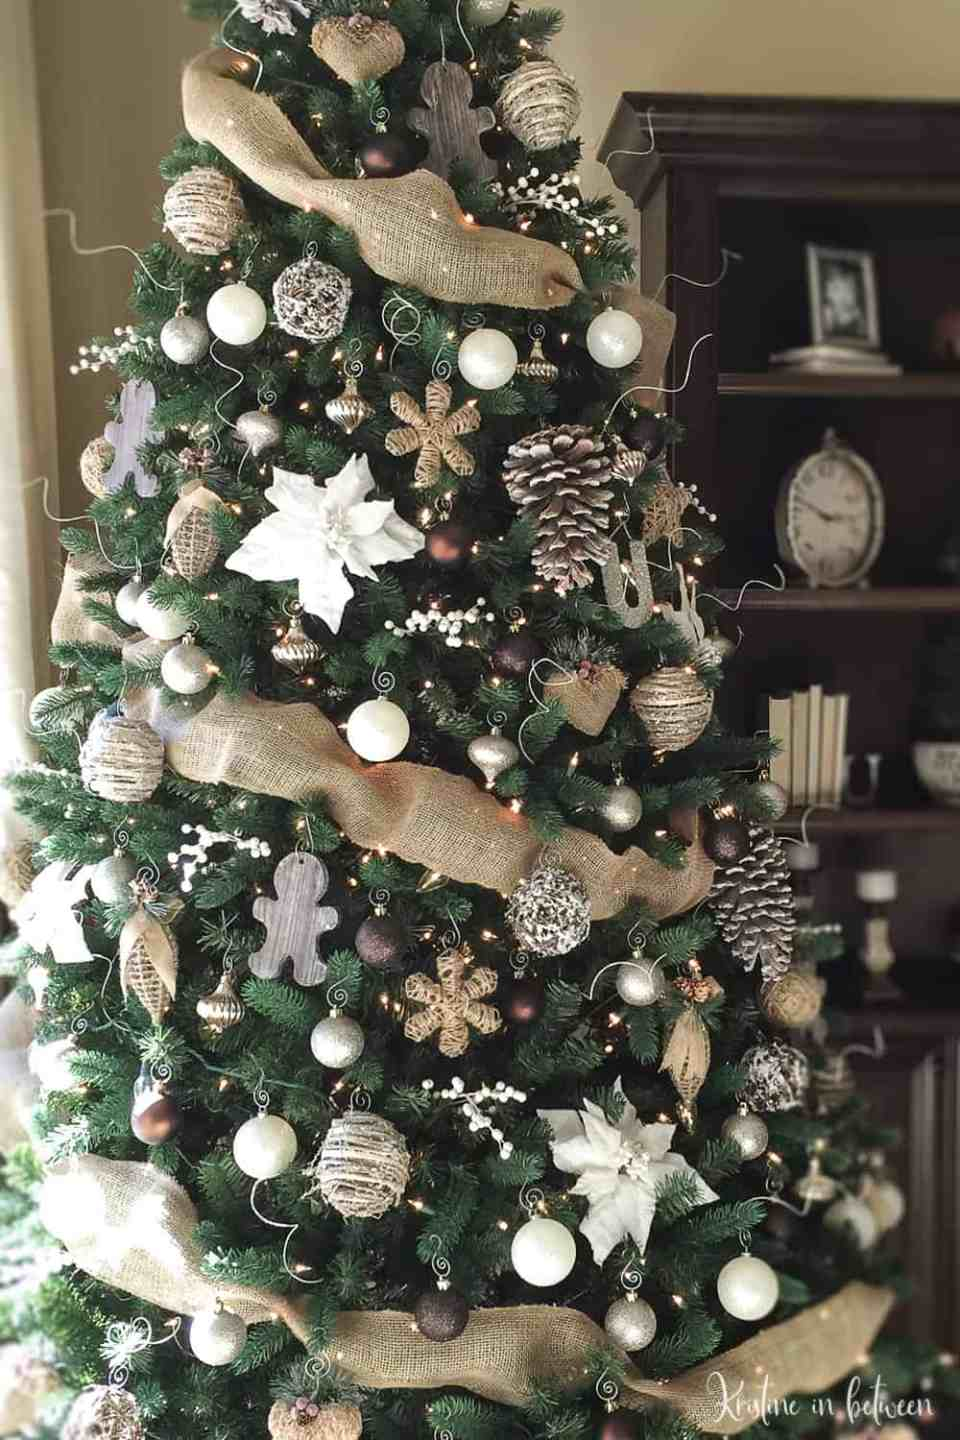 Holiday Charm | Best Way to Decorate Christmas Trees on a Budget: Inexpensive or Free & Easy Holiday Ornaments & Decorations